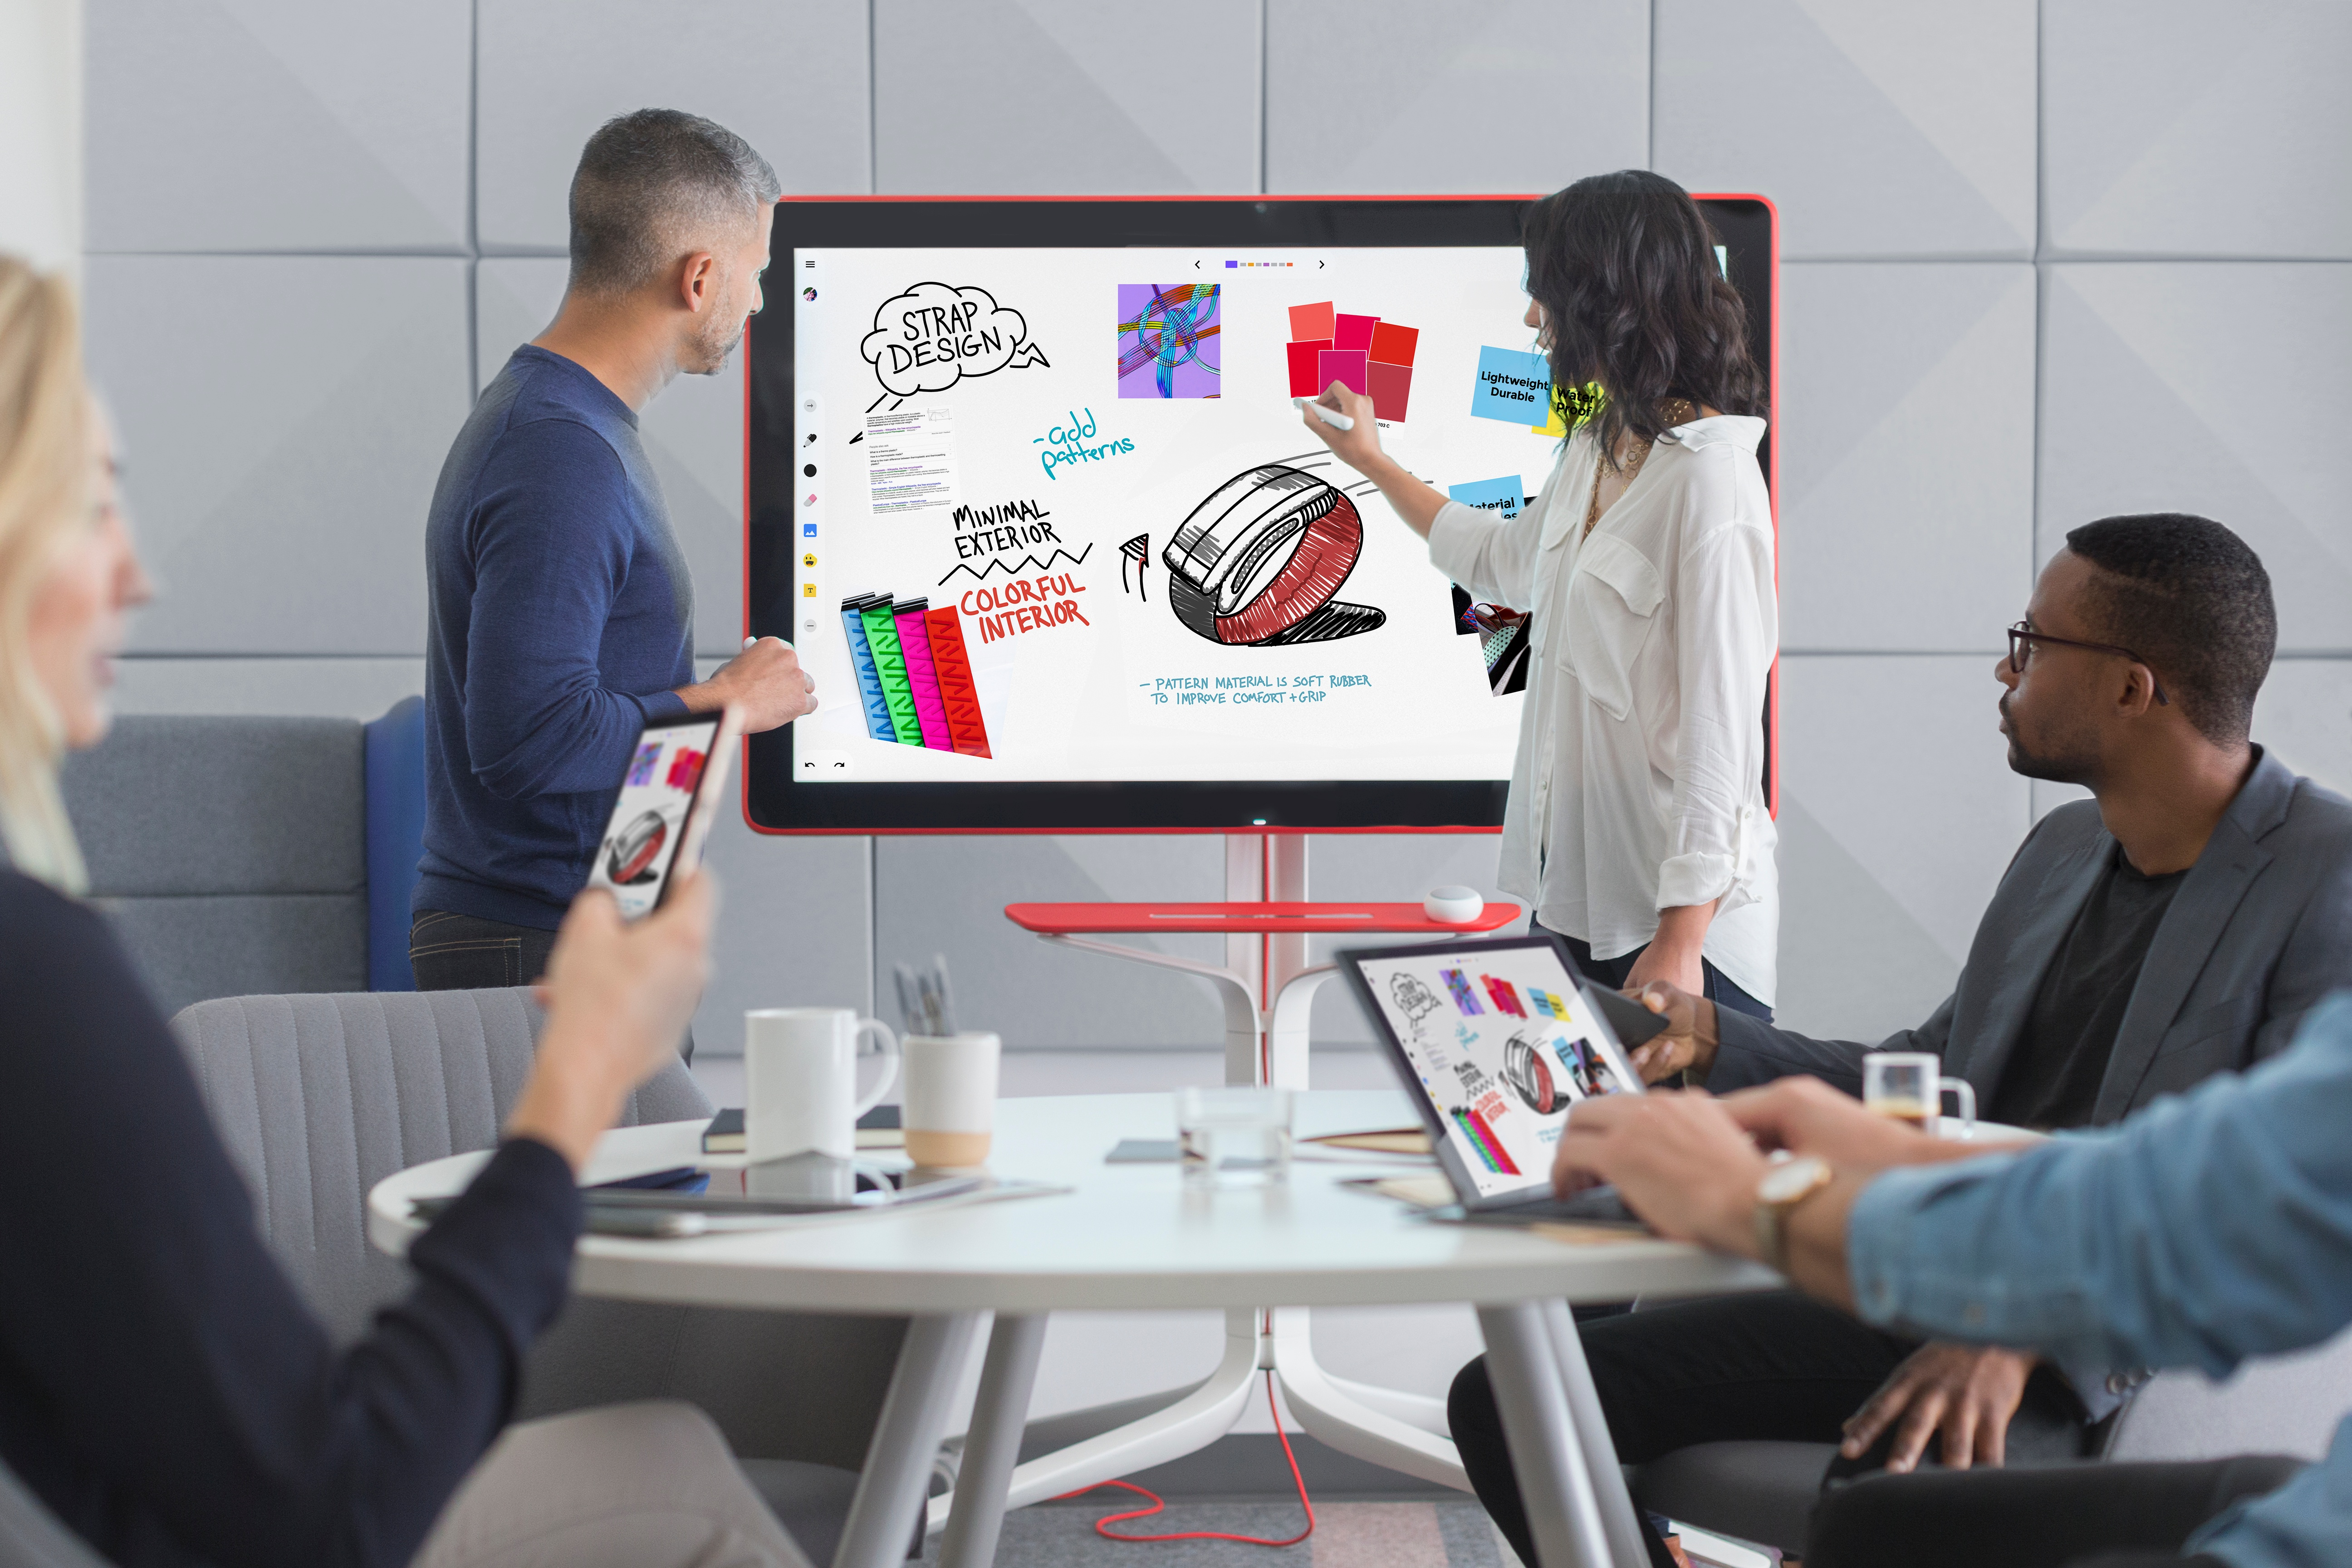 4 ways Google Jamboard takes business collaboration to the next level